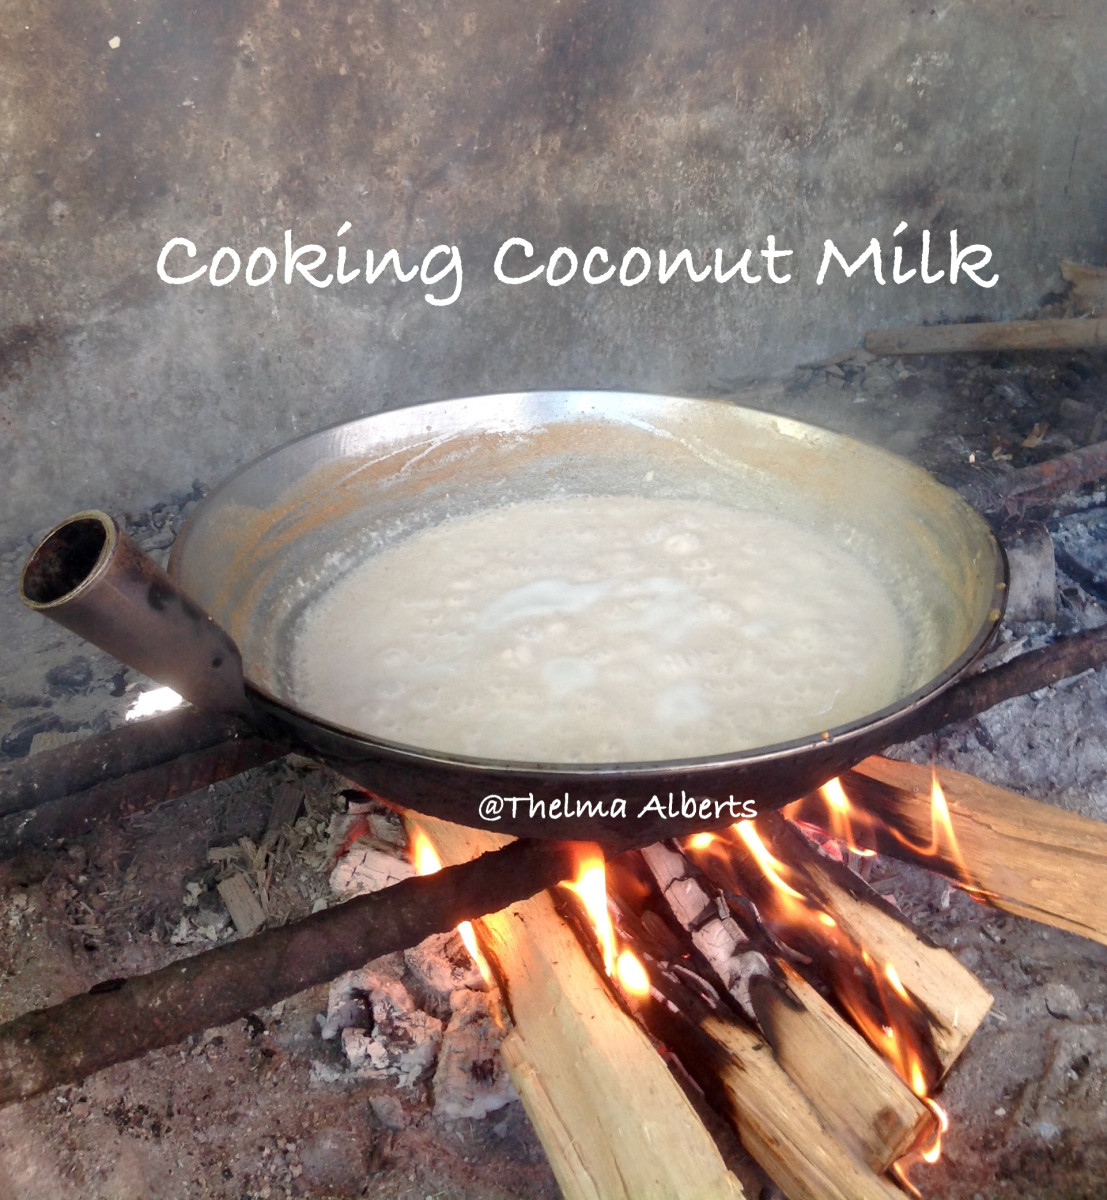 Cooking the coconut milk